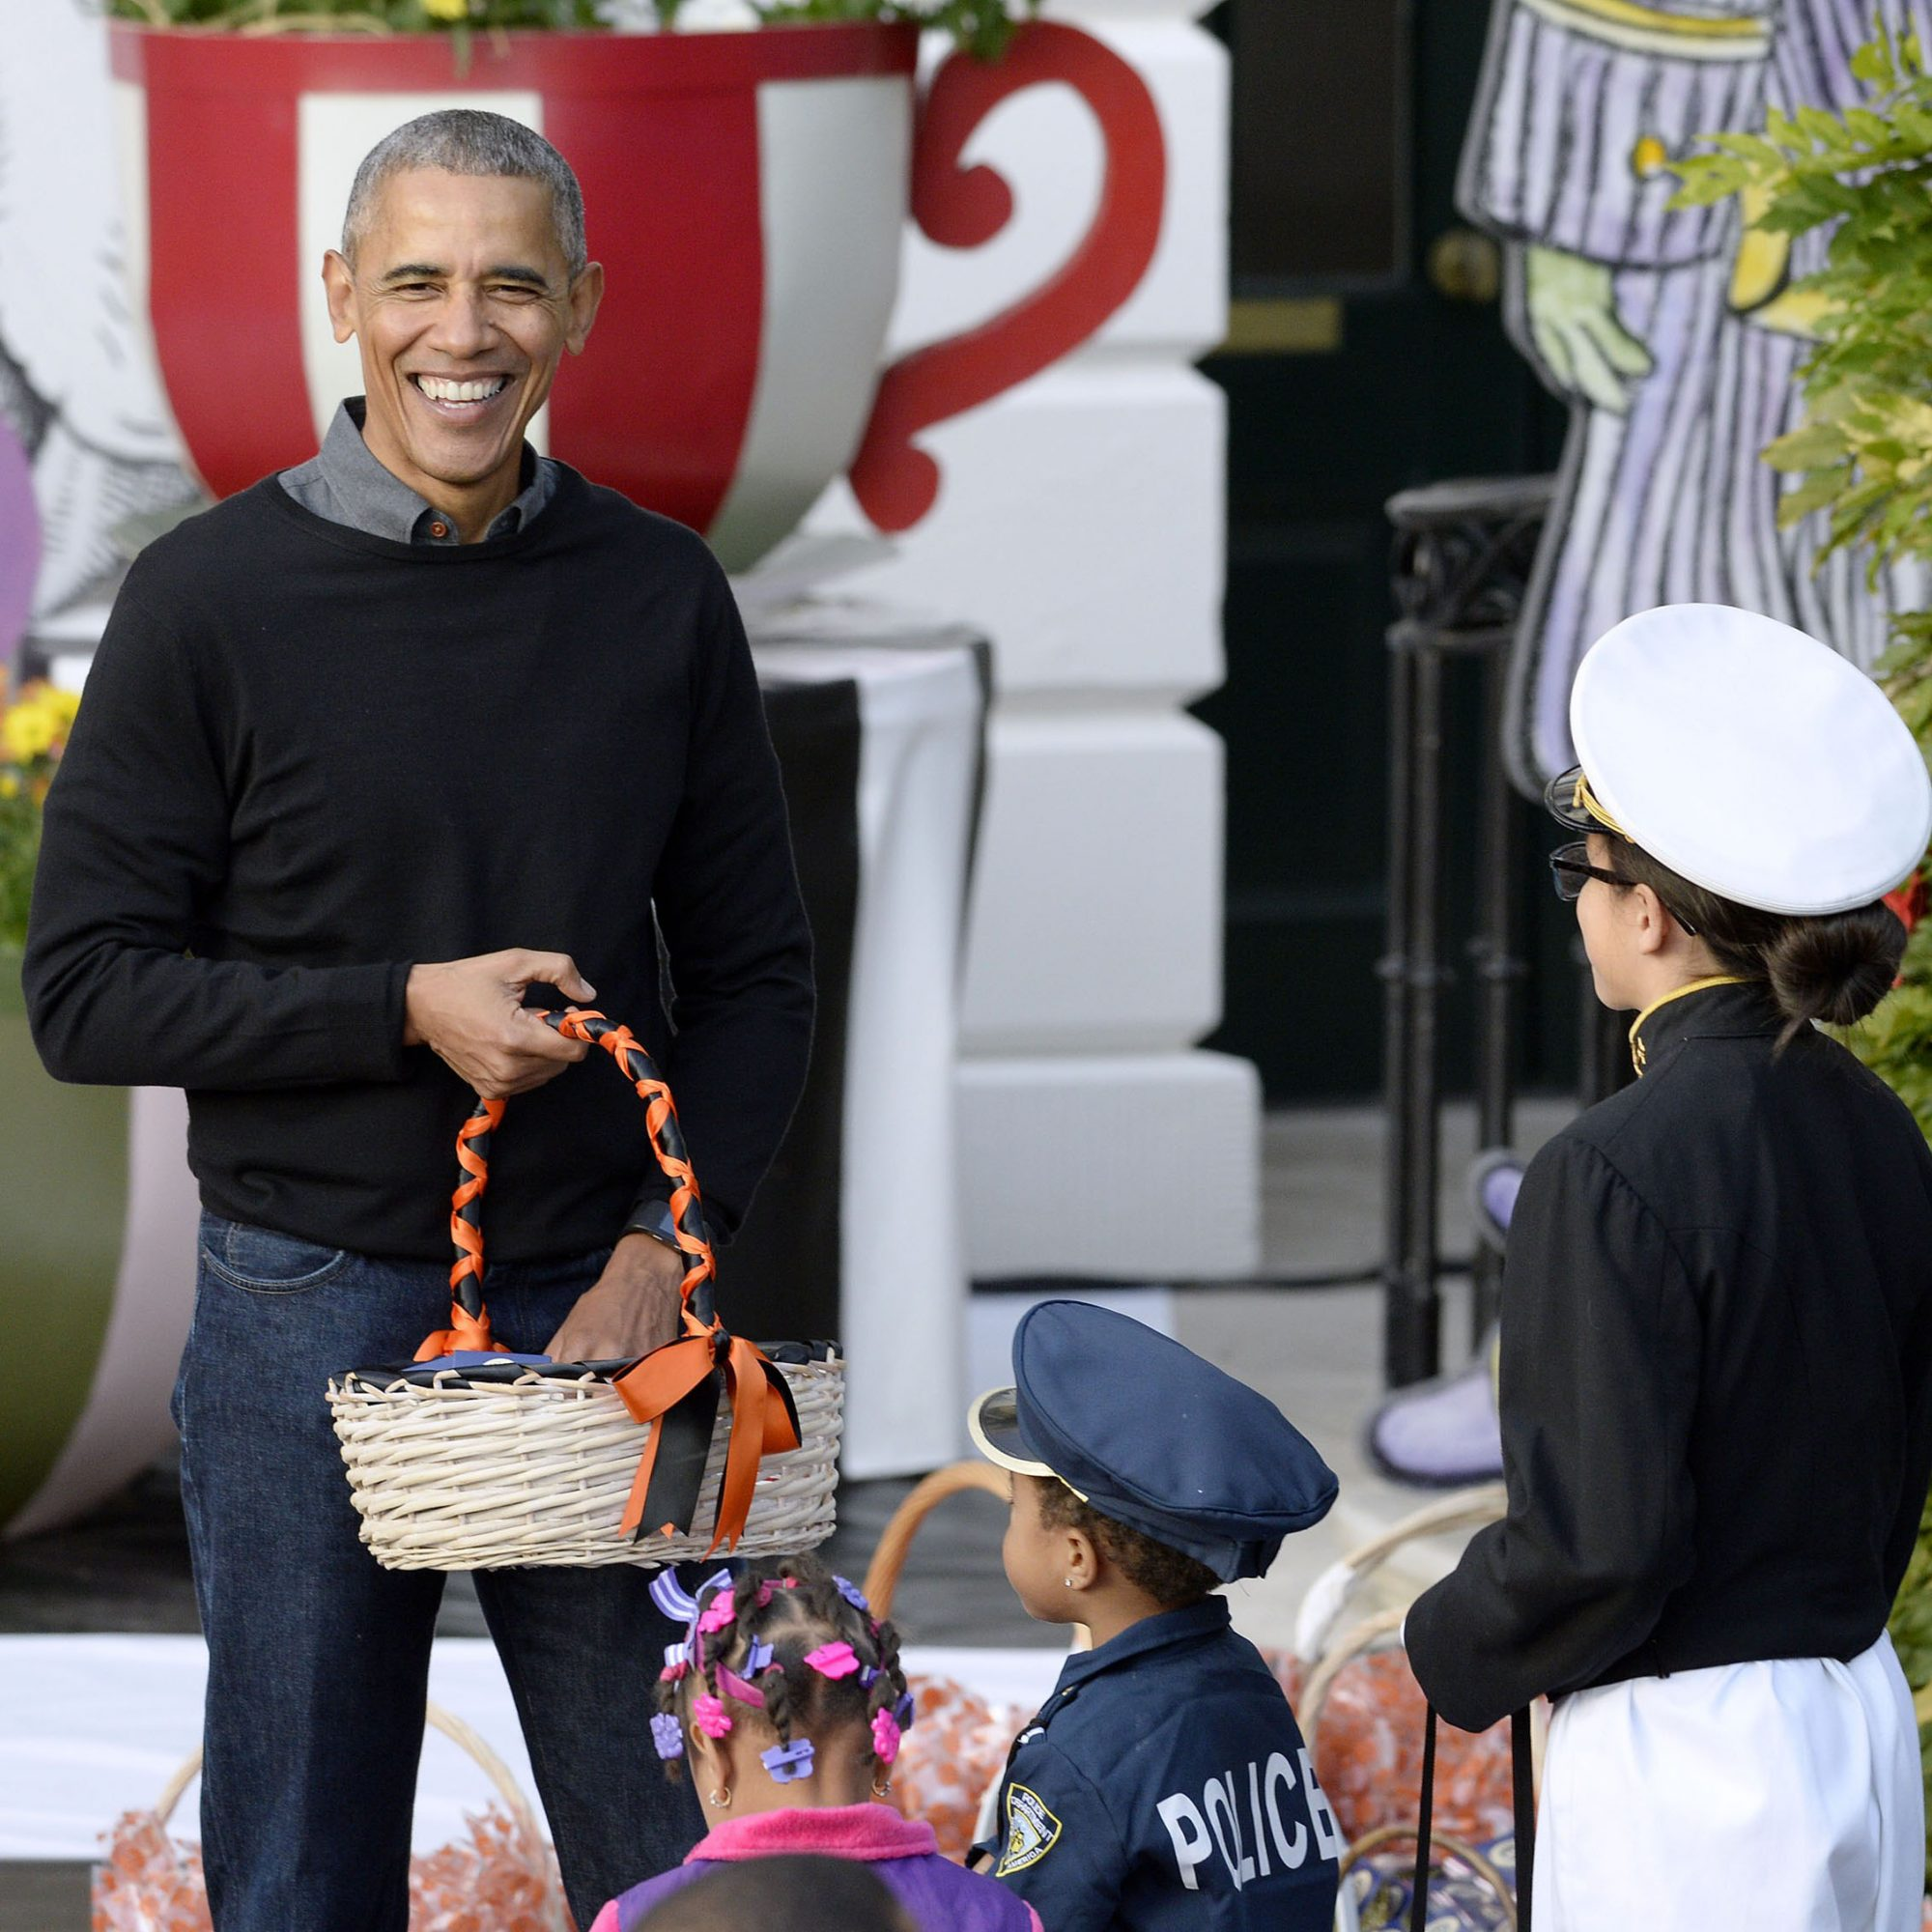 The Obamas Prove You'll Only Want to Trick-or-Treat at the White House